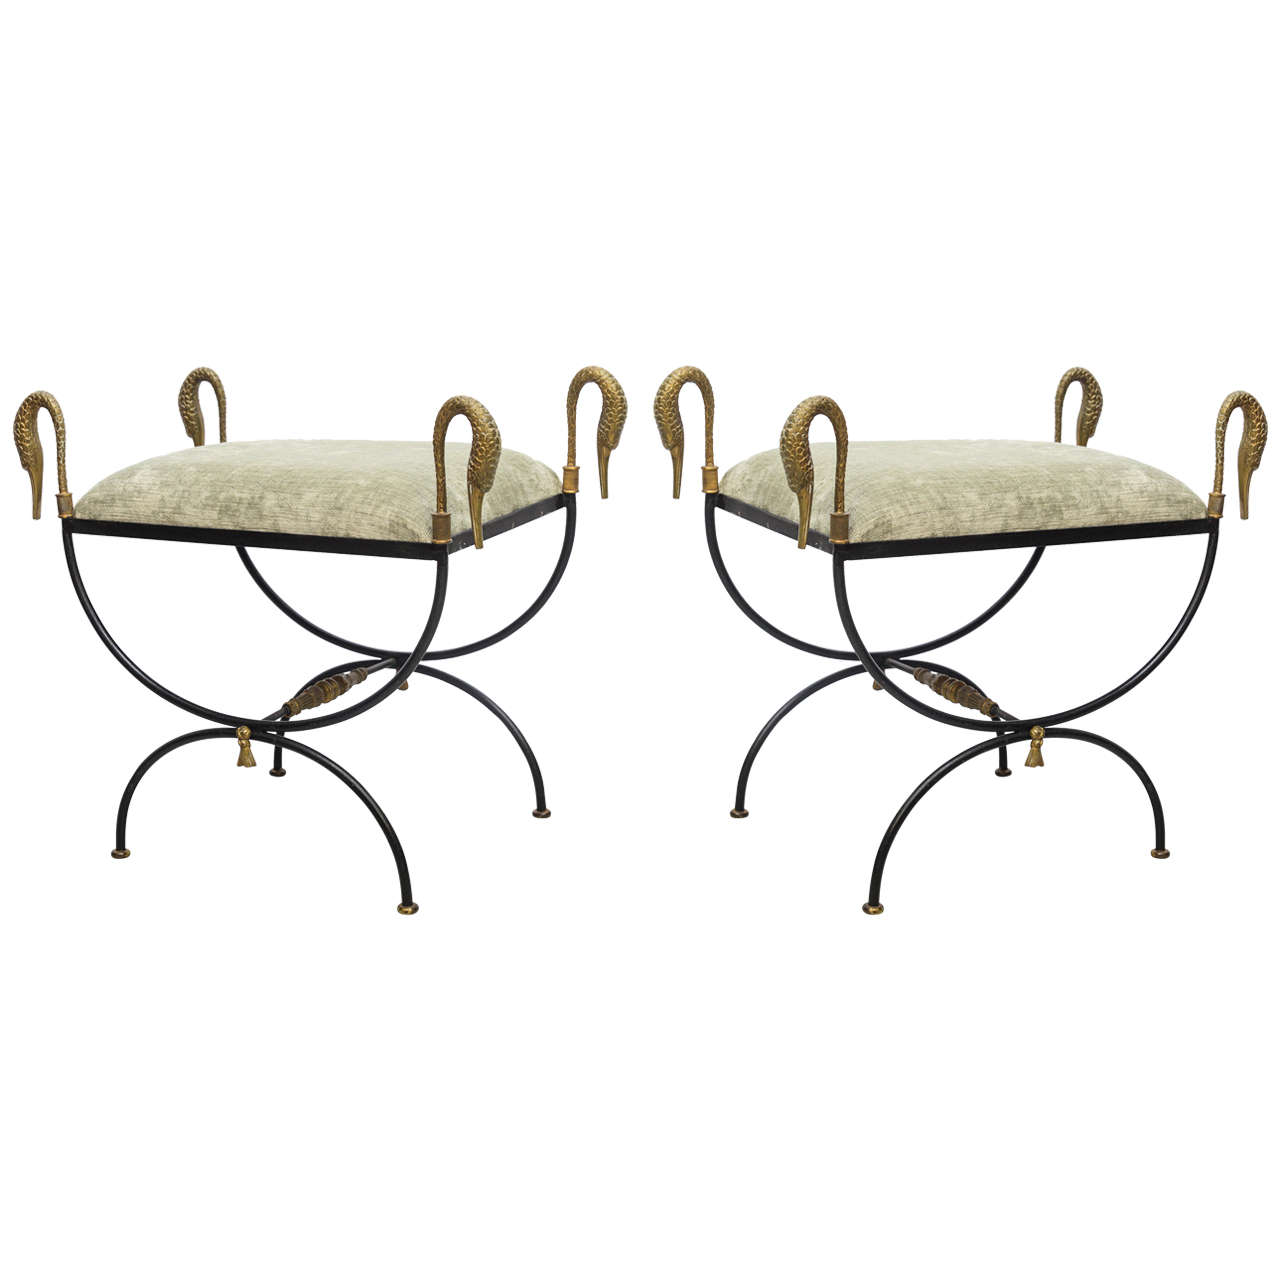 Pair of Neoclassical Iron and Bronze Swan Benches